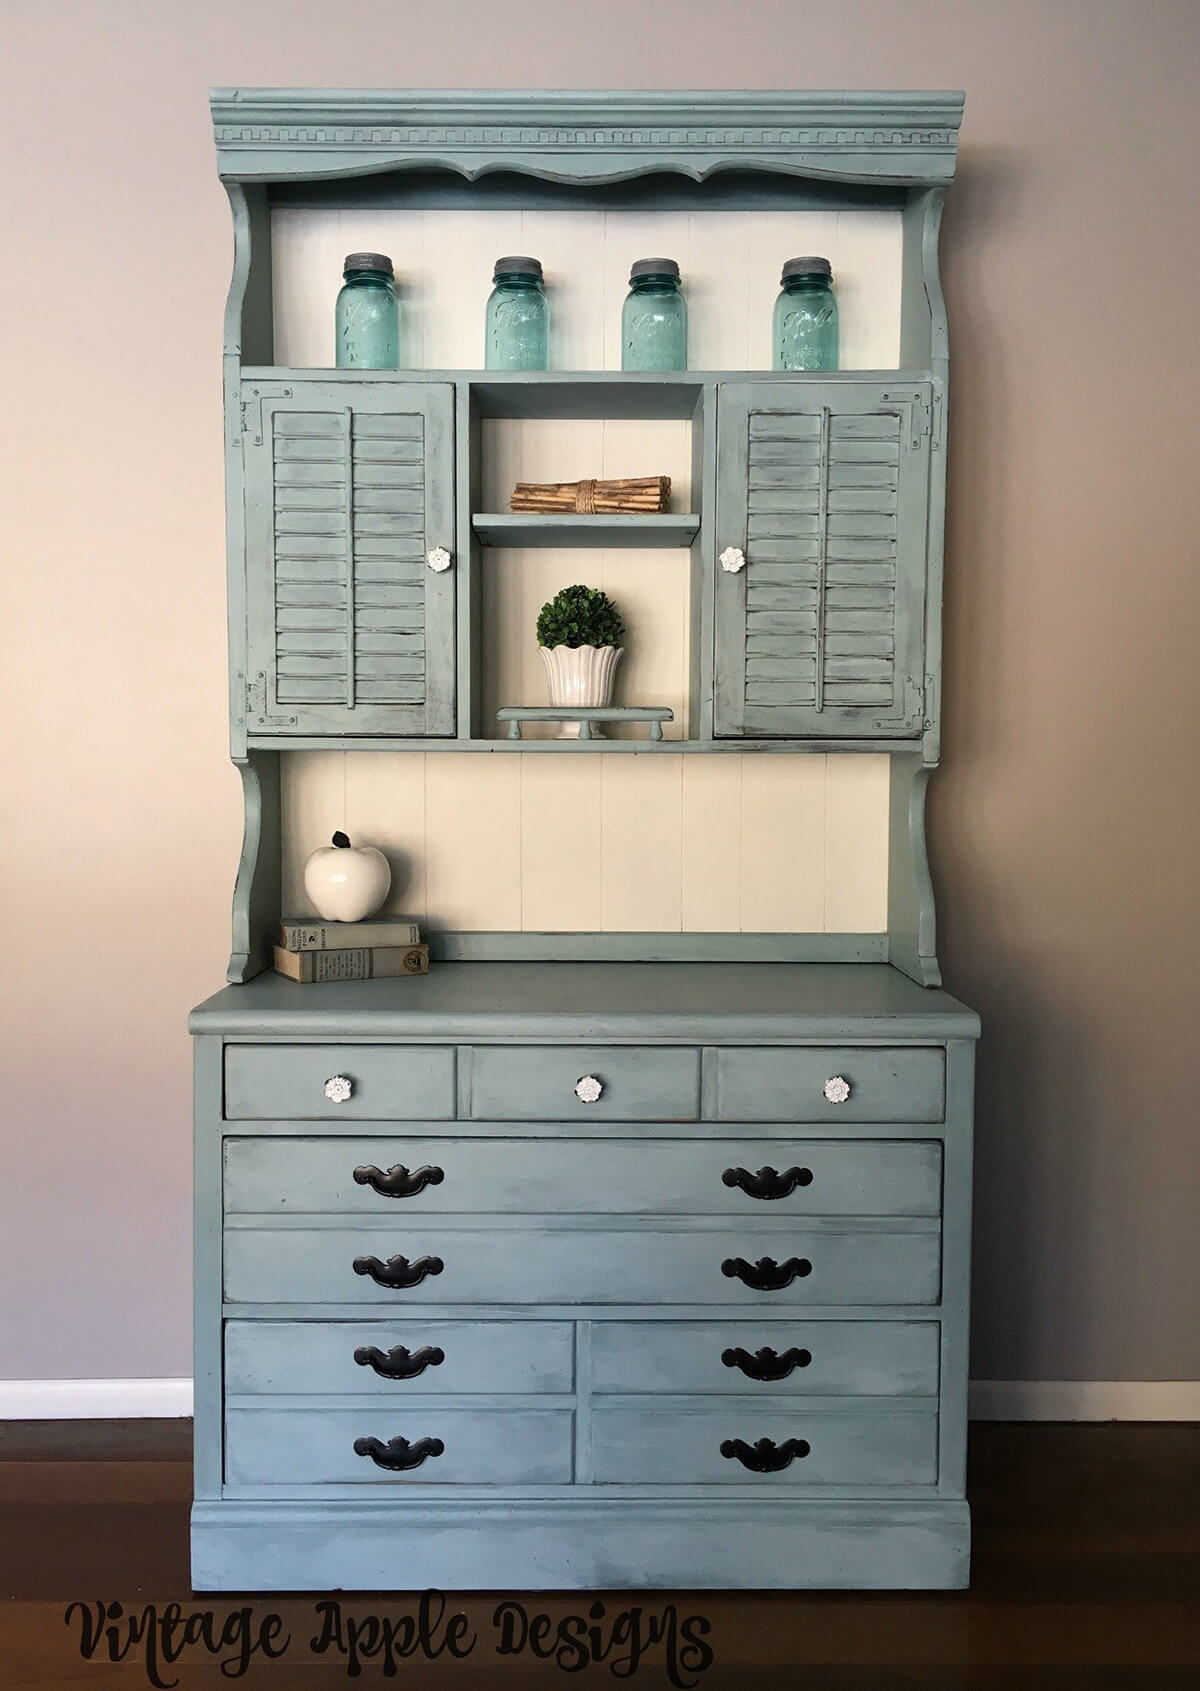 Using Grey-Blue Paint Can Promote Soothing